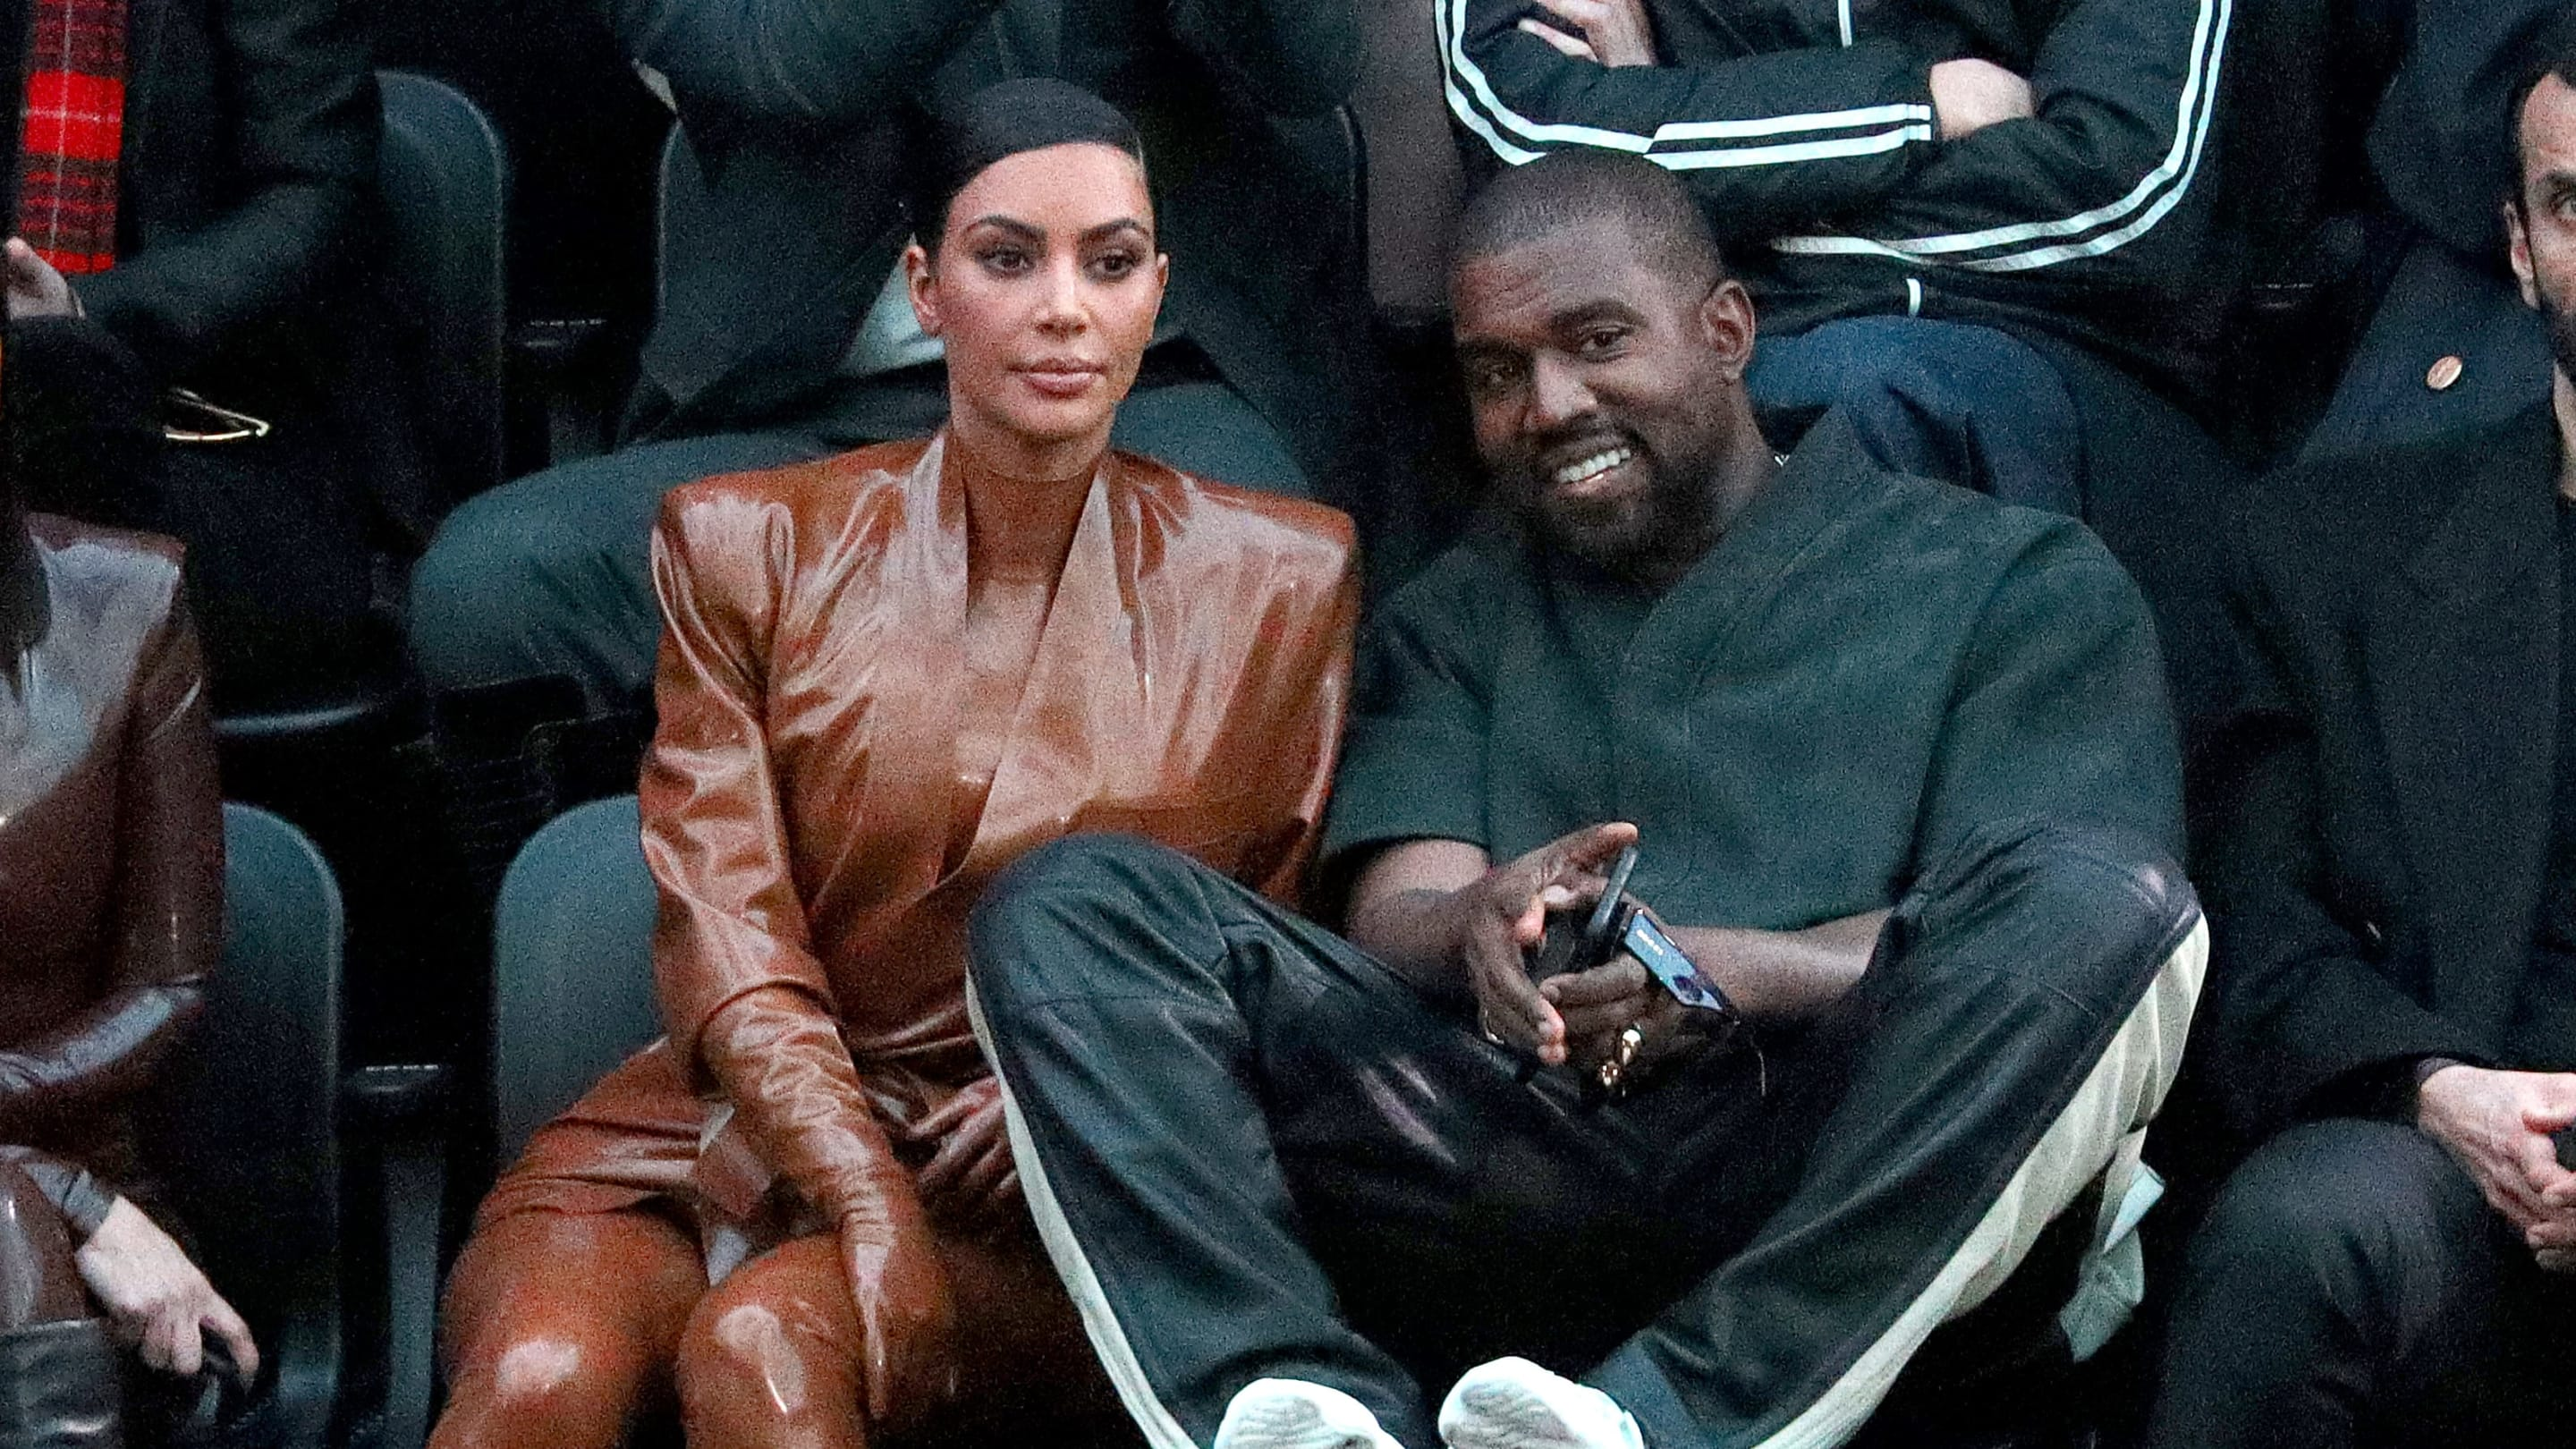 Where Kim Kardashian and Kanye West Reportedly Stand On Getting Divorced